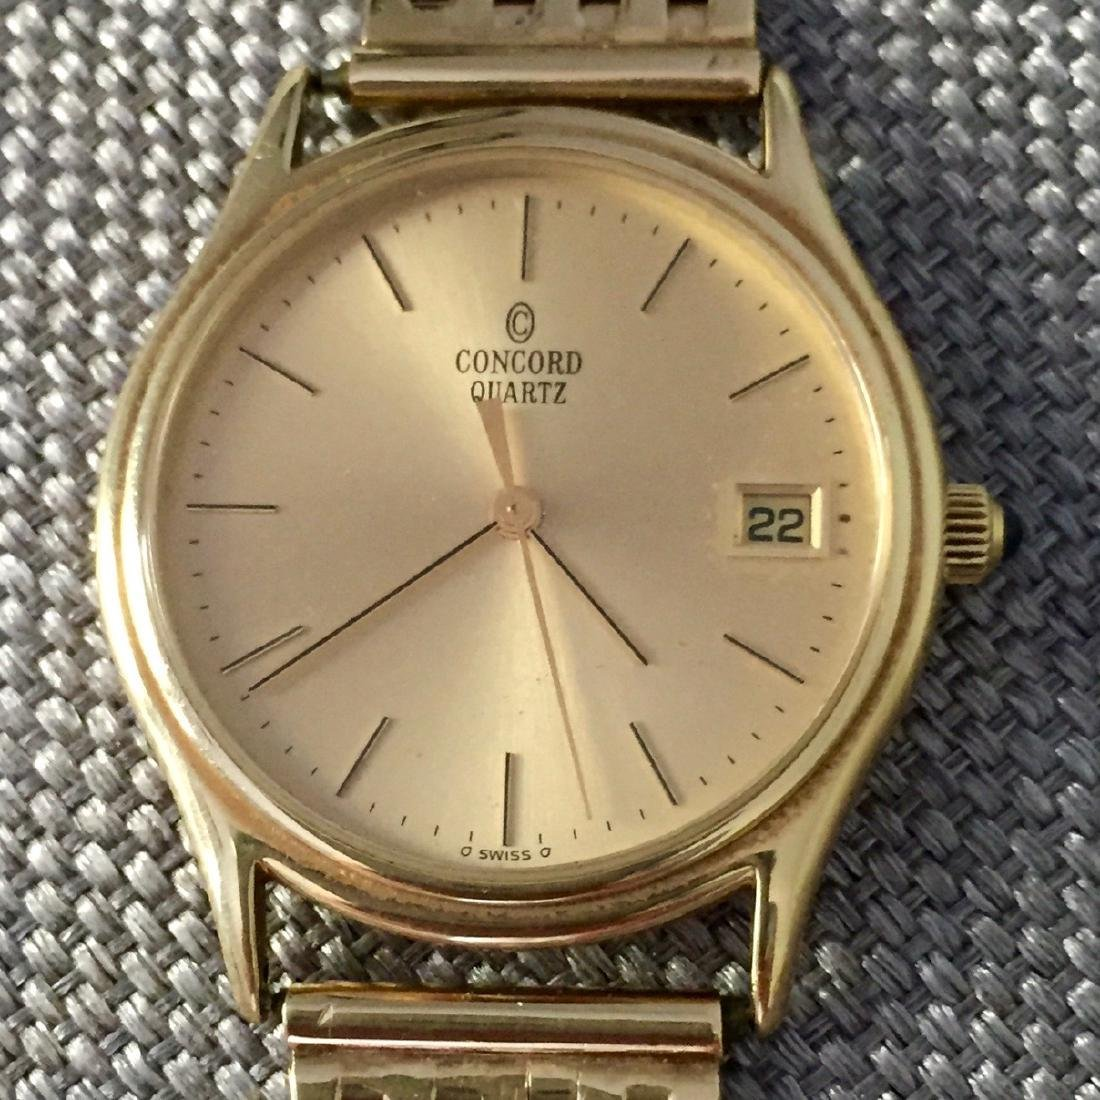 Vintage Concord La Scala Gold Men's Watch, 1970s